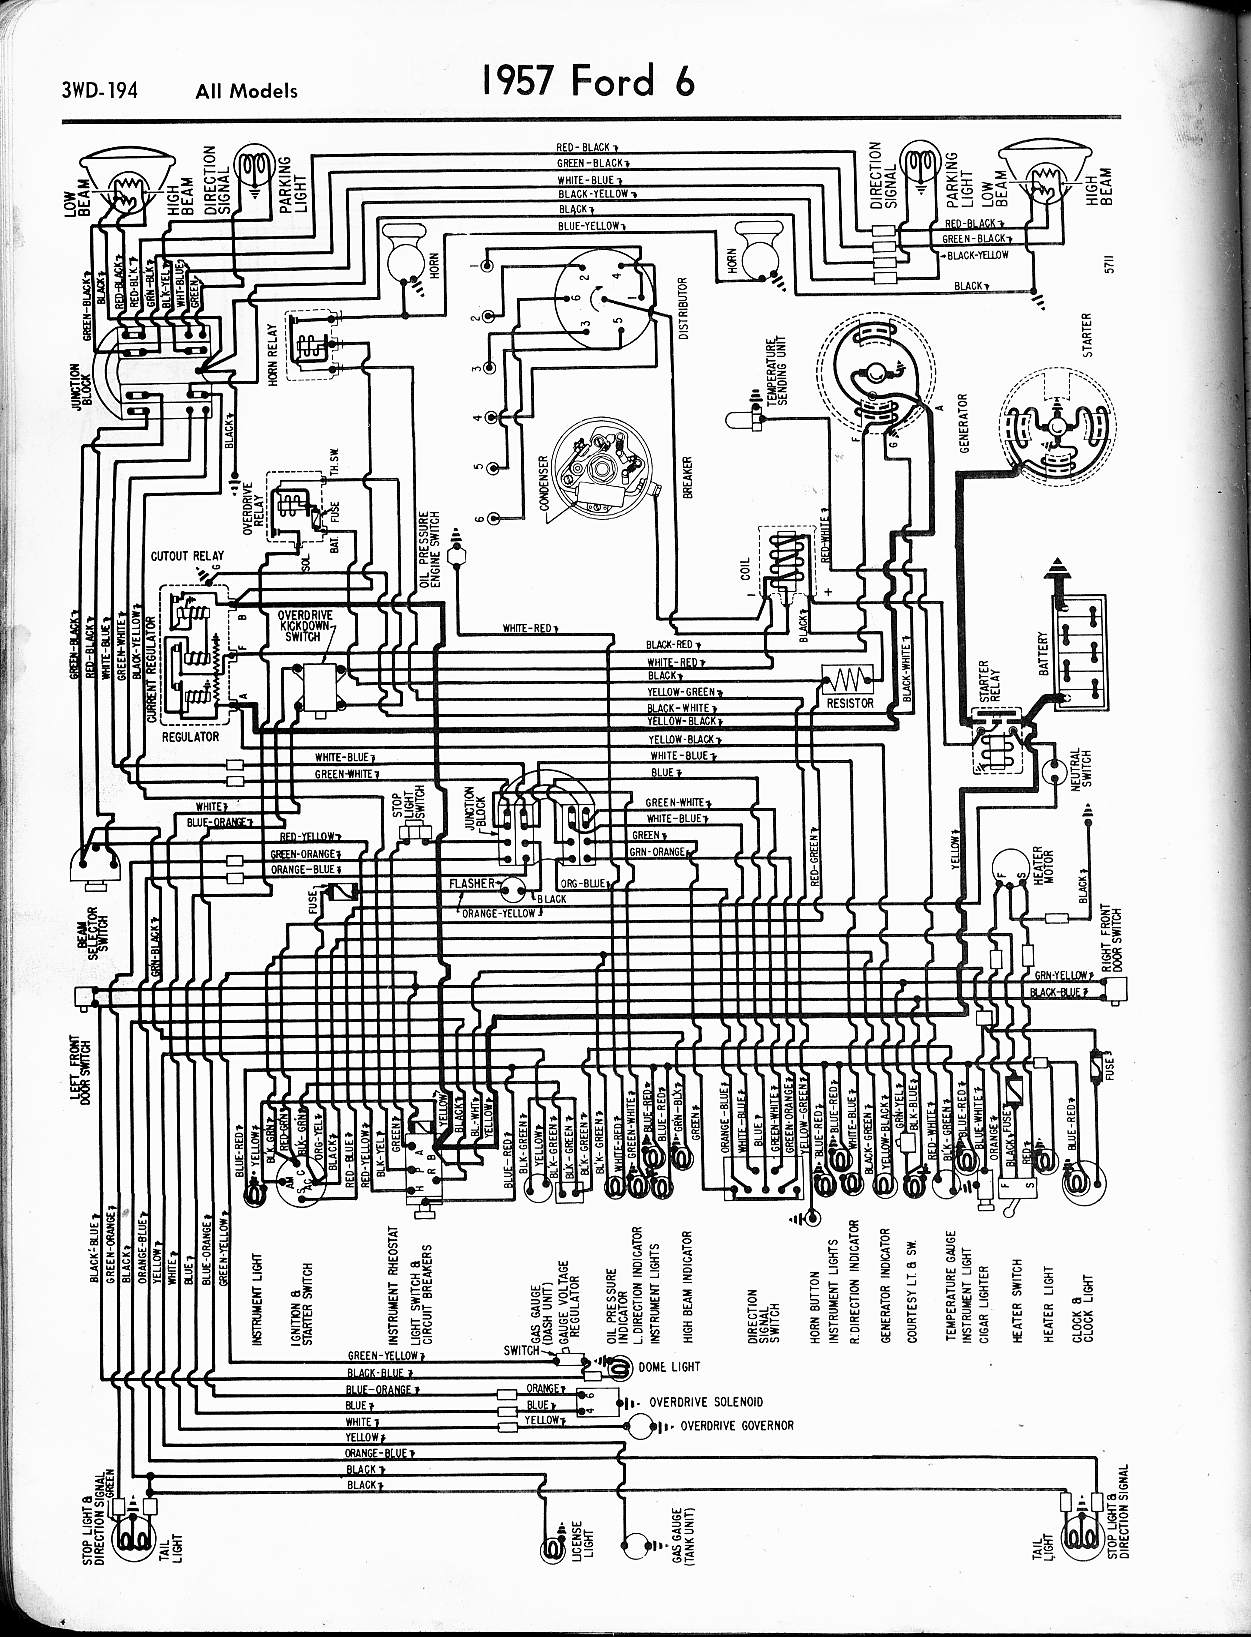 MWire5765 194 57 65 ford wiring diagrams Ford Schematics at gsmx.co